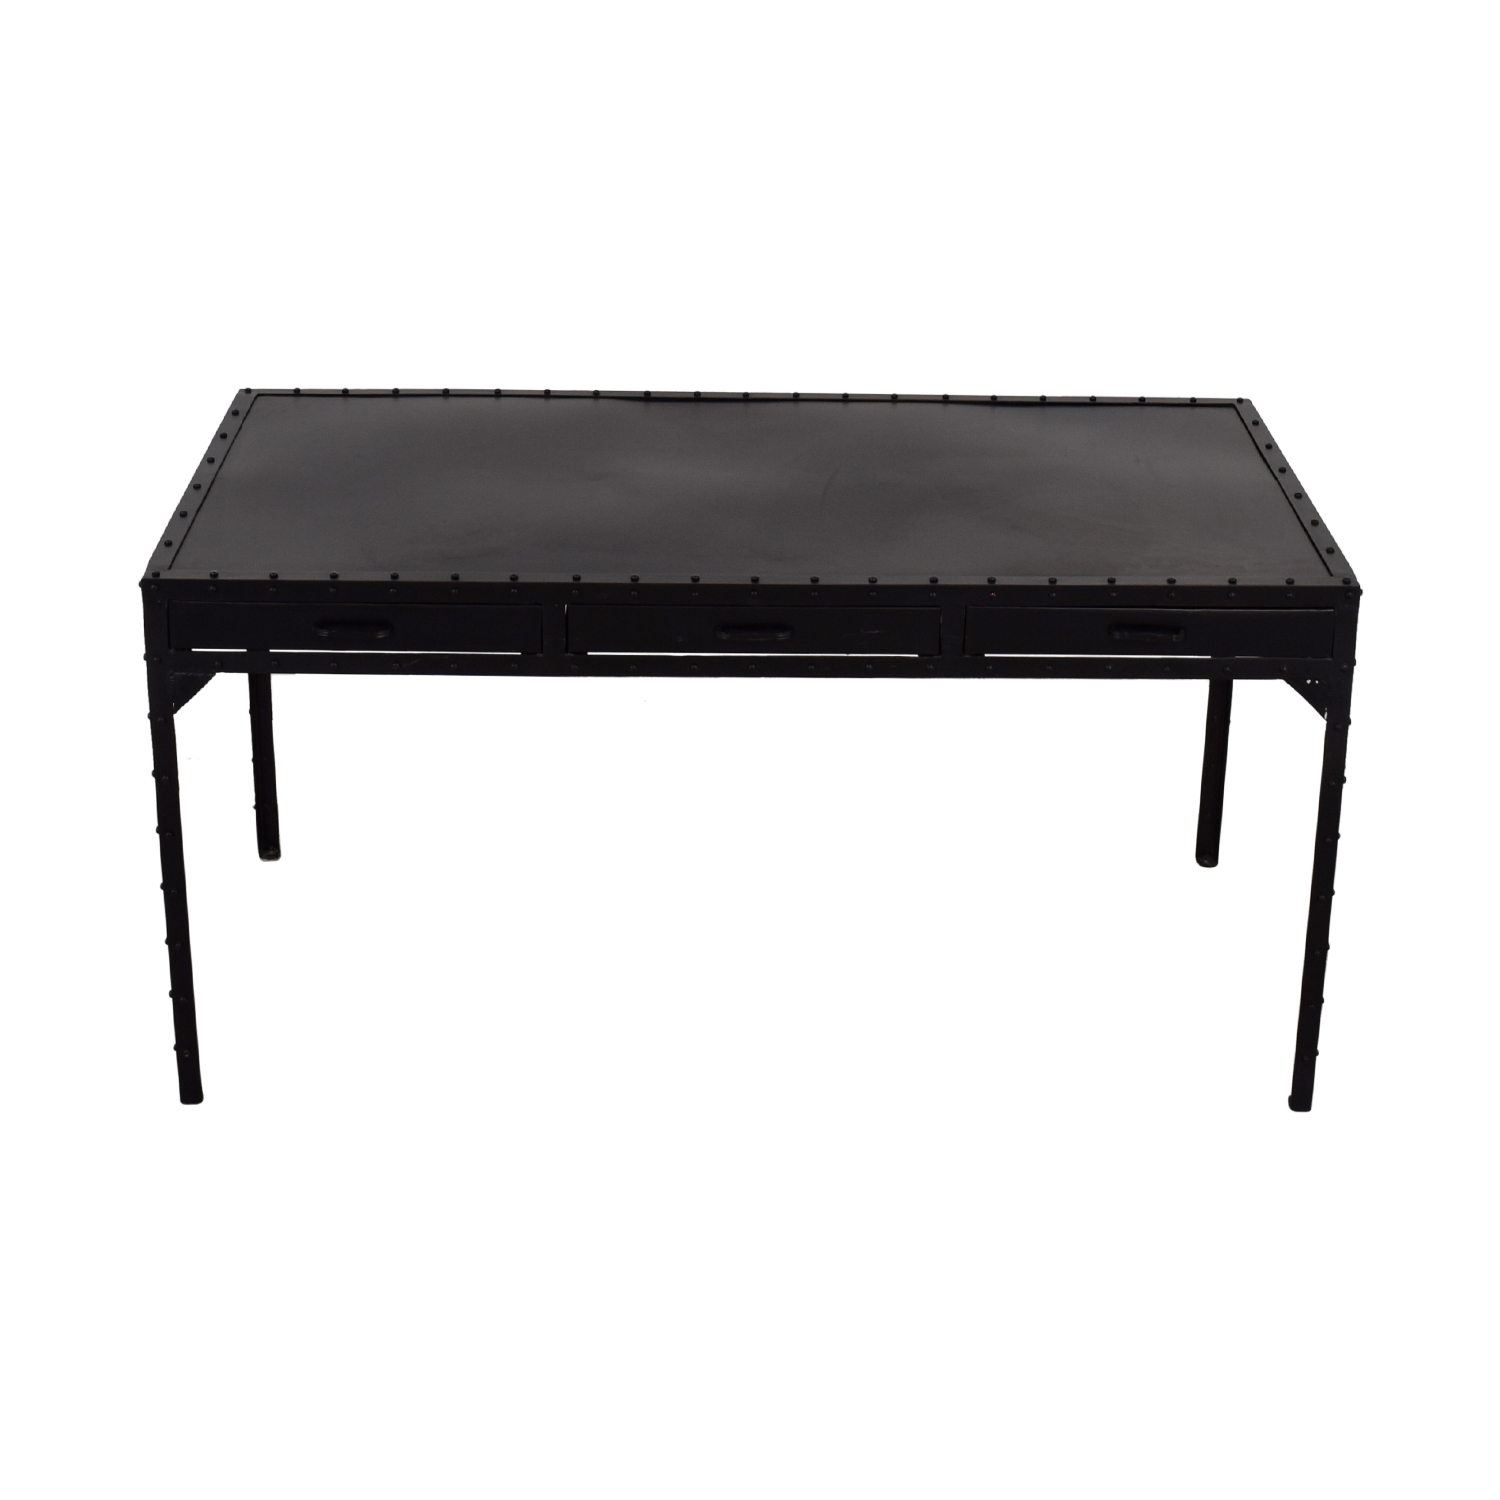 off ikea alex white desk tables carpet and home black metal rivet used accent table project meyda lamp shades mahogany nest wood coffee set king bedding sets kohls wedding